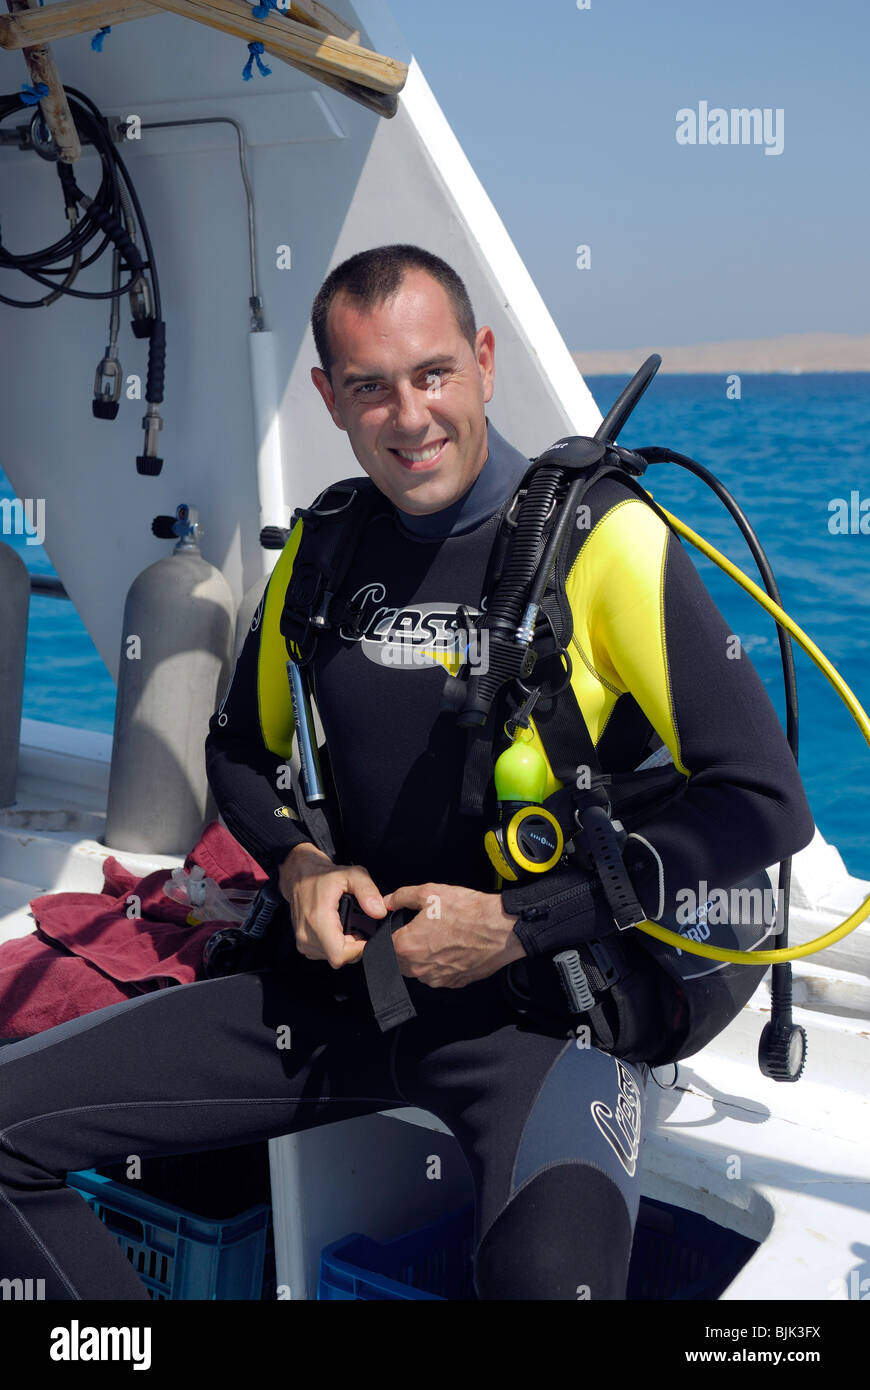 Diver gearing up before going to dive - Stock Image